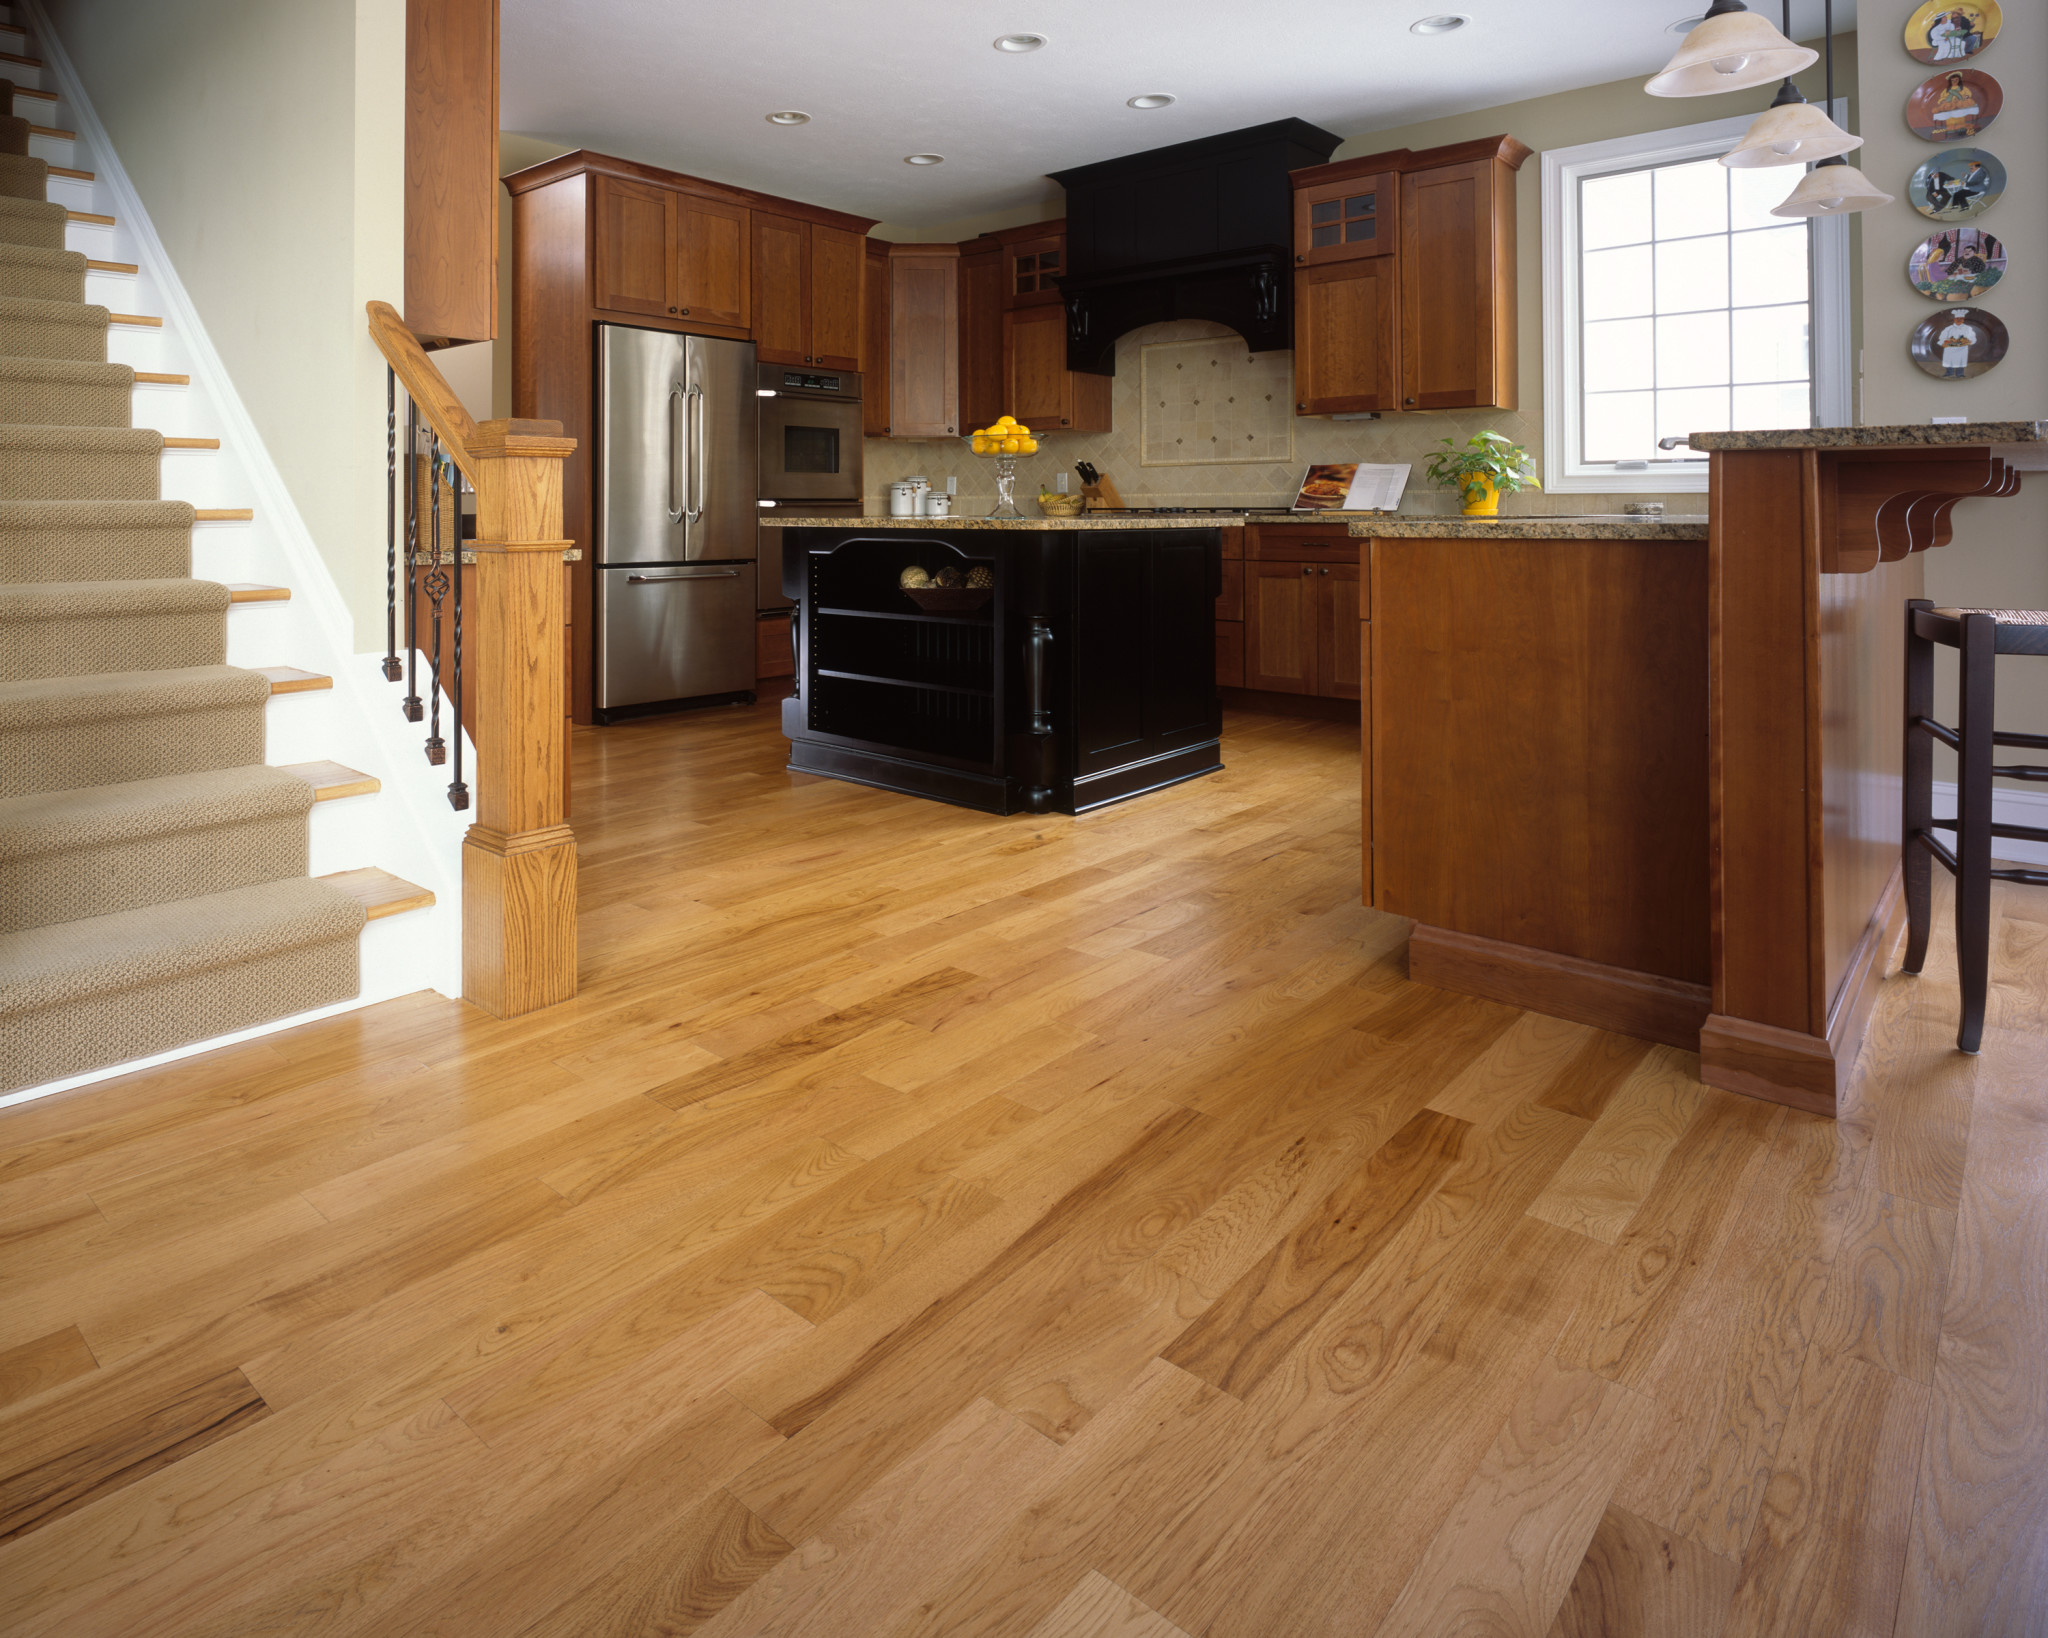 Wood Floor For Kitchens Wood Floors Tile Linoleum Jmarvinhandyman